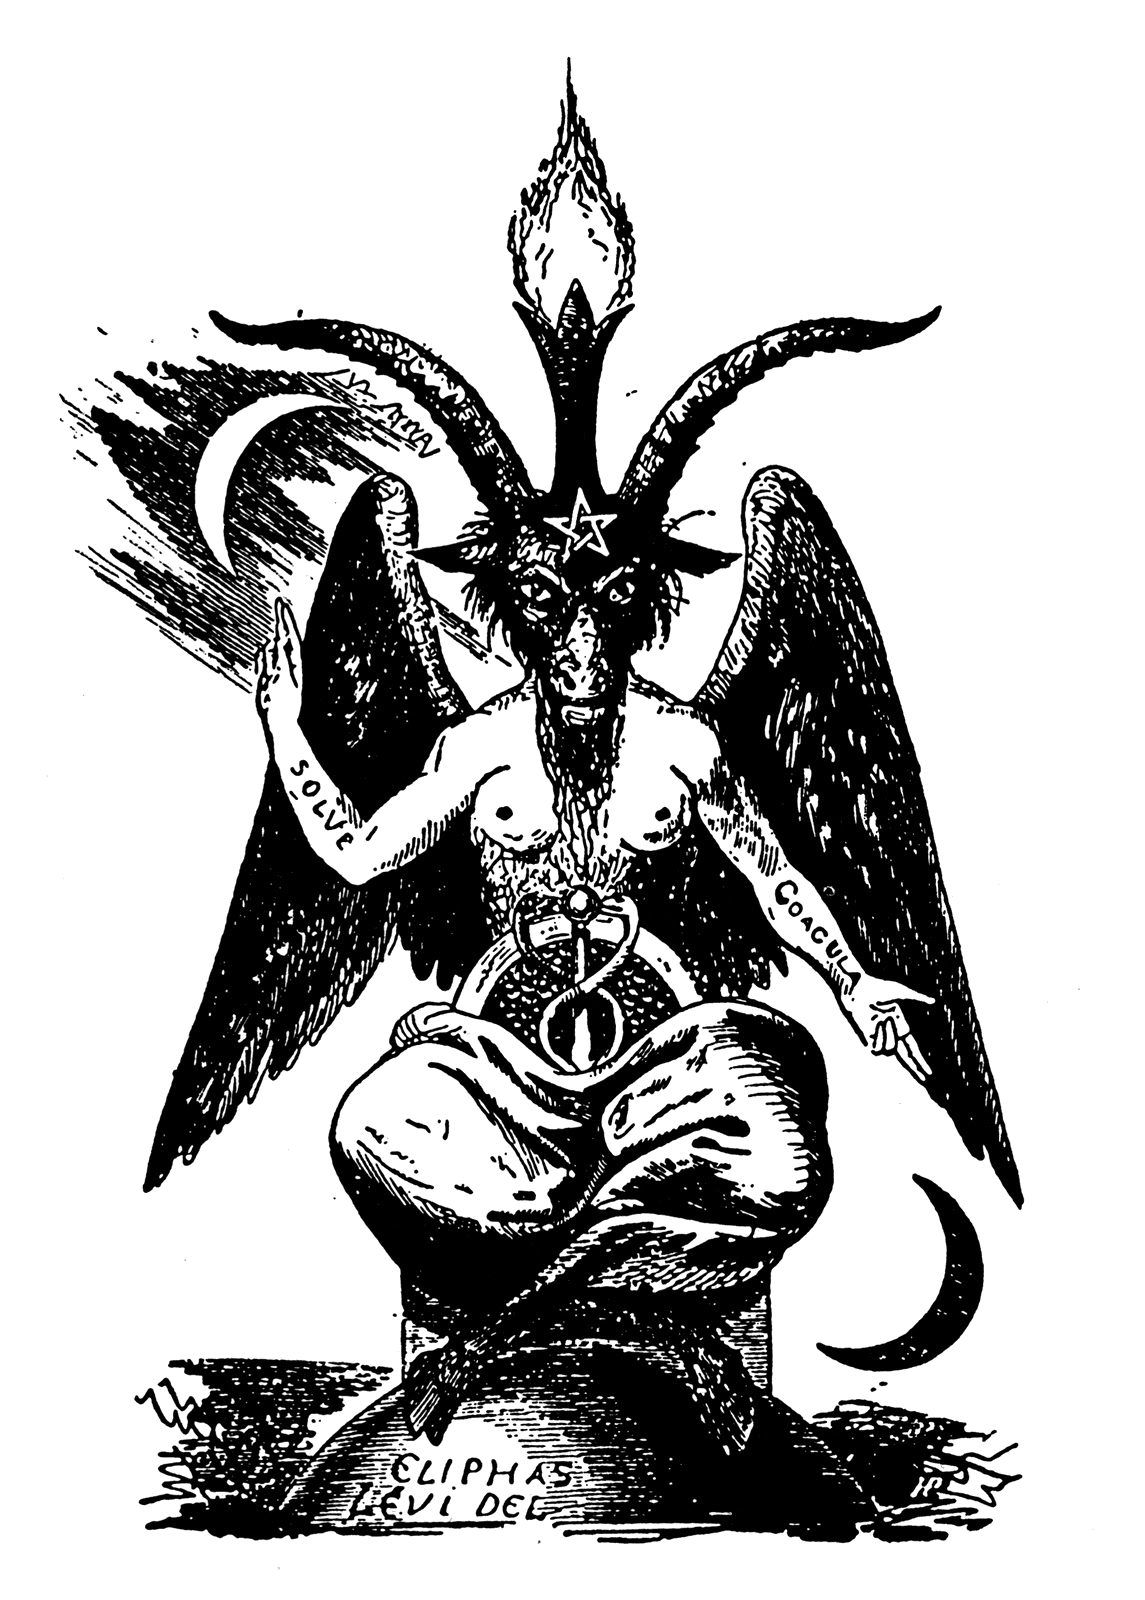 Diablo drawing 1. Baphomet random stuff i